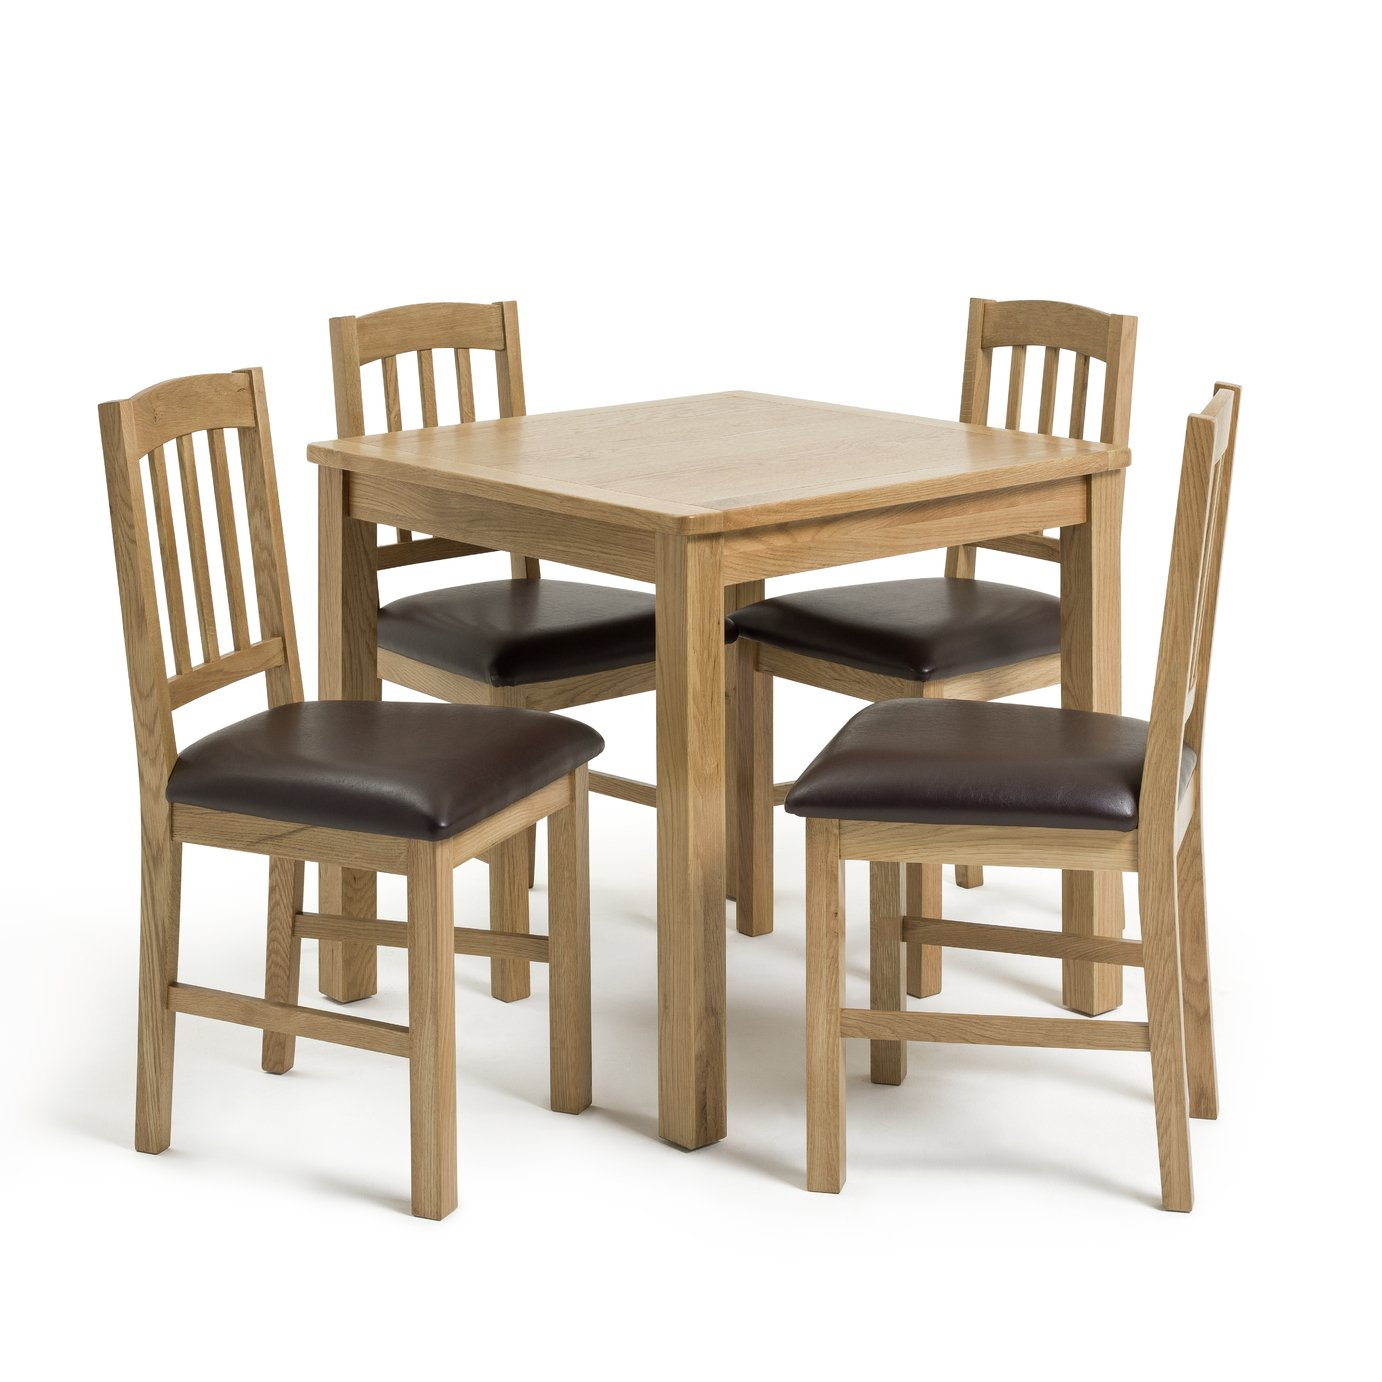 Space Saver Table And Chairs Argos: Review Of Collection Ashwell Oak Veneer Table & 4 Chairs